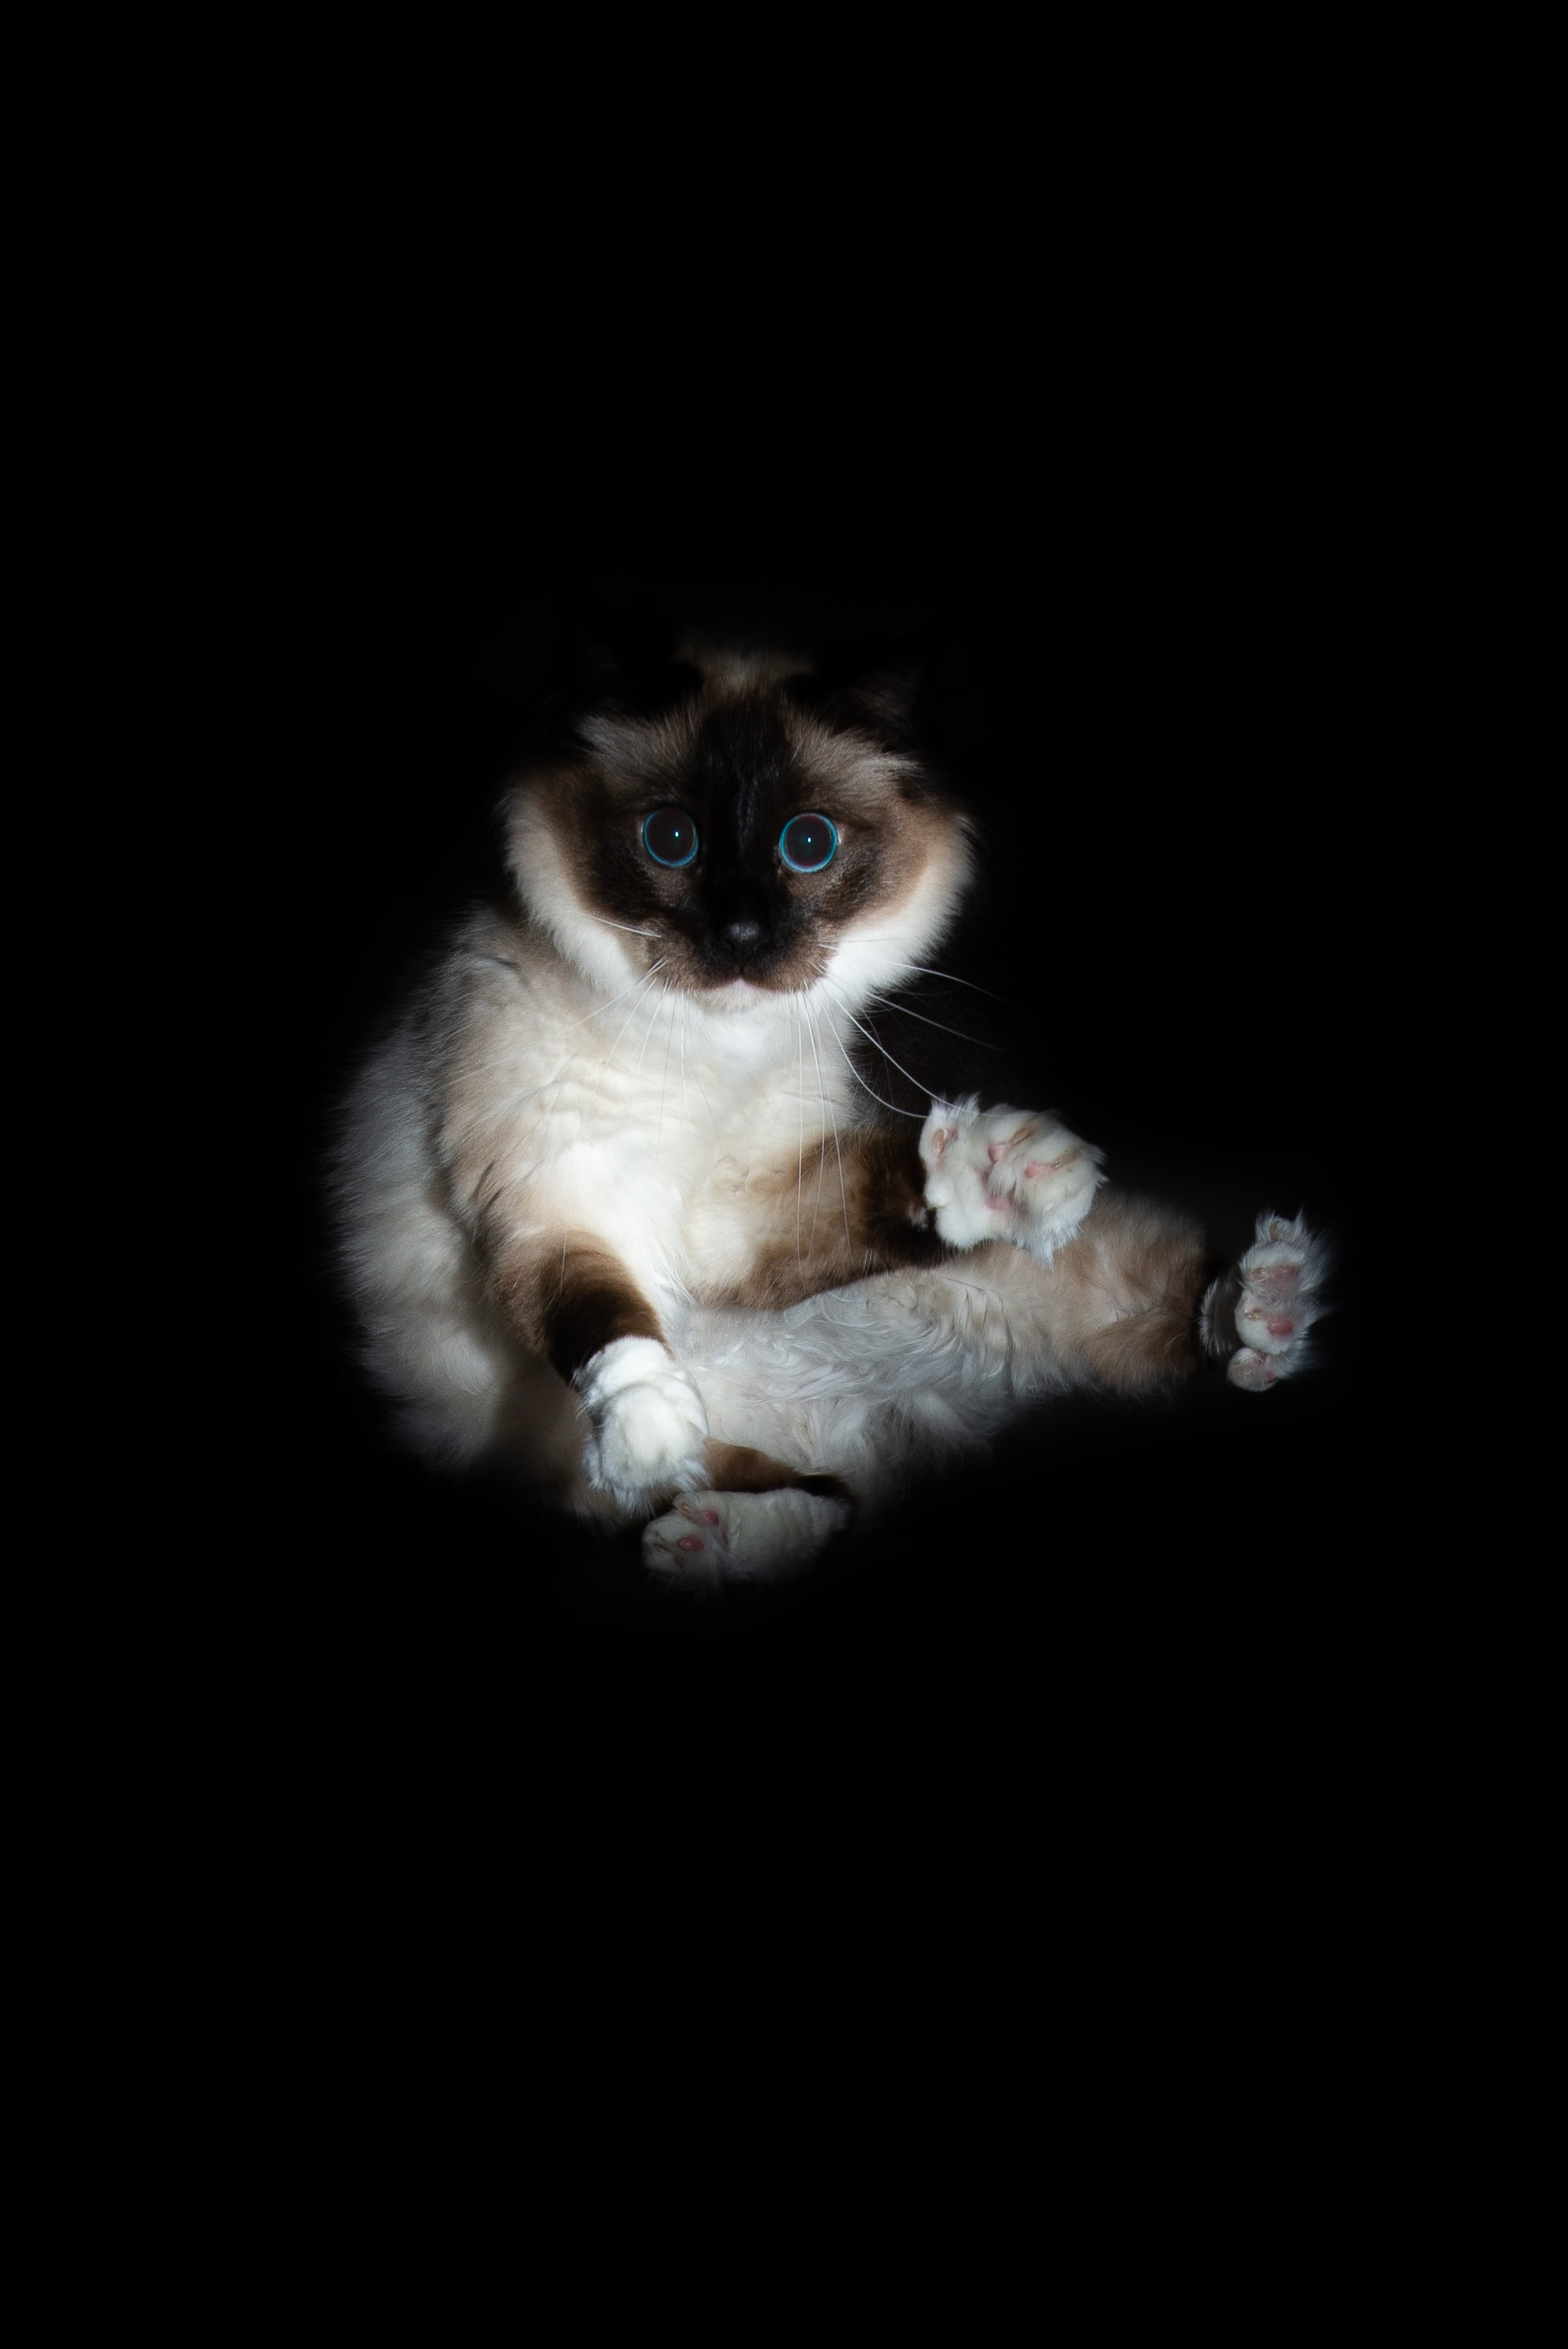 106086 download wallpaper Animals, Cat, Siamese, Sight, Opinion, Funny, Pet screensavers and pictures for free